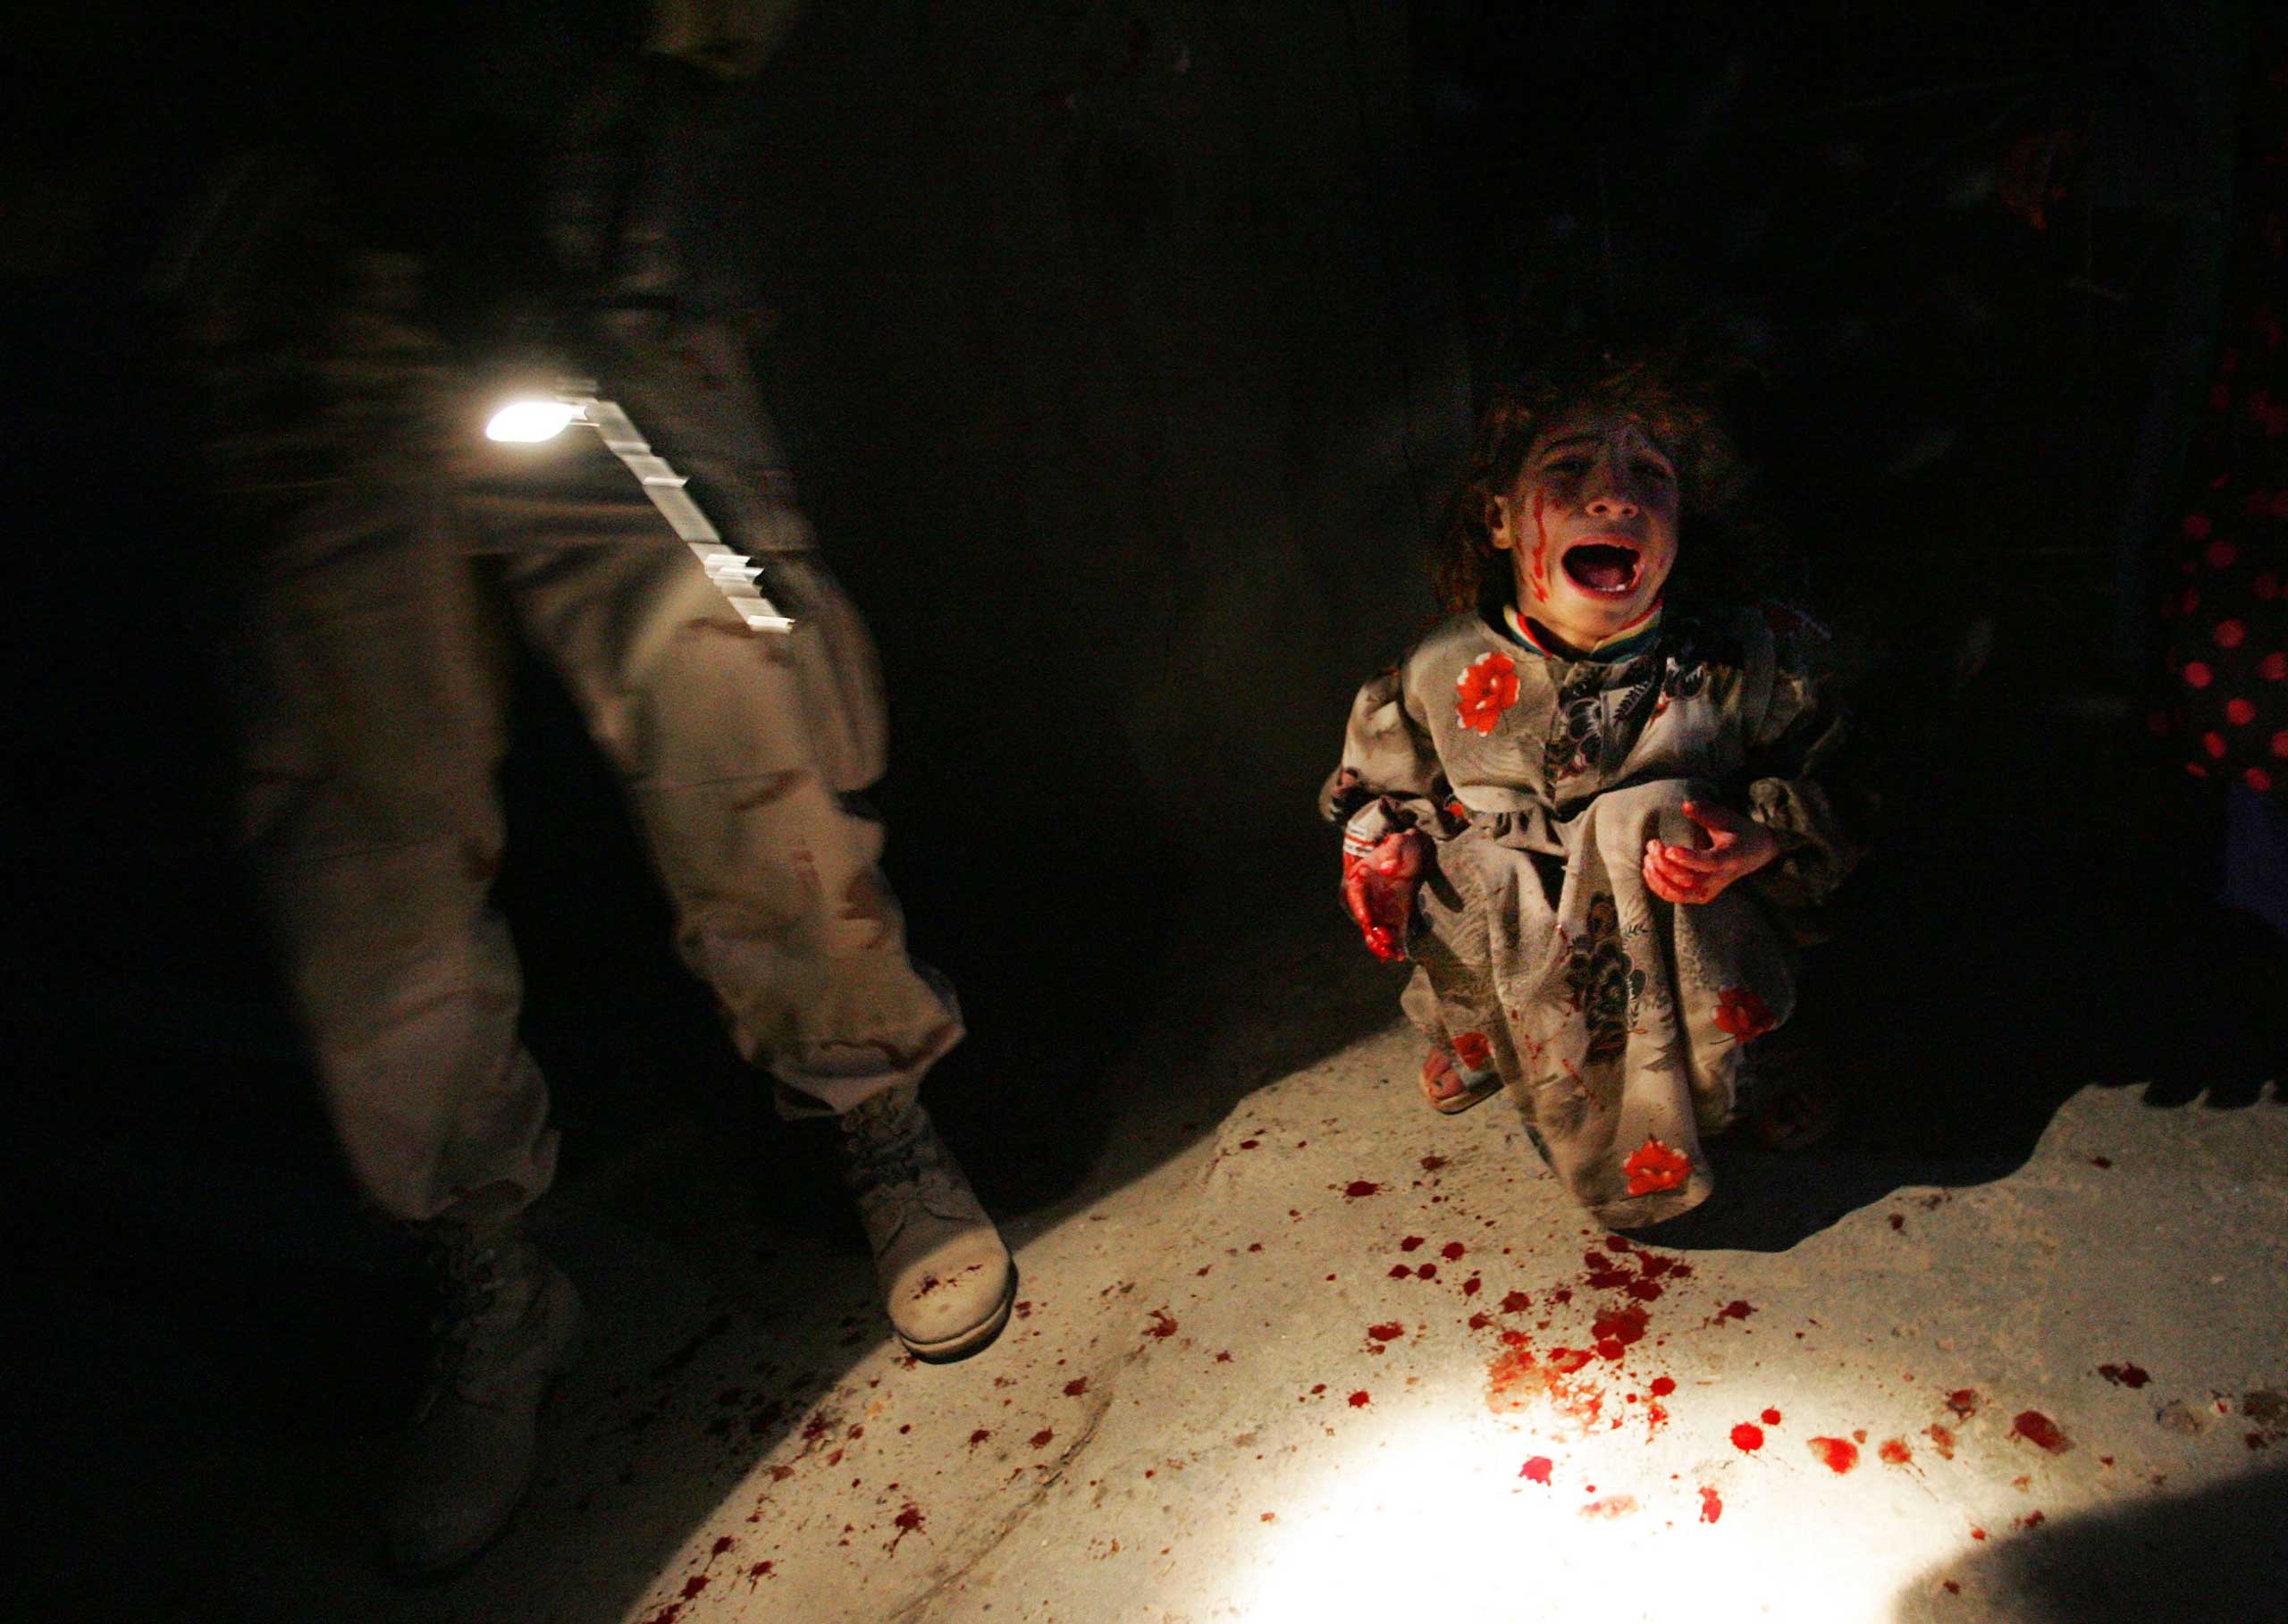 """<b>Chris Hondros, Jan. 18, 2005                                   </b>                                   <i>The following is an excerpt written by Chris Hondros about his photograph. The writing was pulled from his laptop recovered after he was killed on assignment in Libya. </i>                                                                      At six in Tal Afar, it isn't yet quite dark. A gloom hung over the roads and alleys with just a little dark blue light from the sky. No one was out. As we made our way up a broad boulevard, in the distance I could see a car making its way toward us. With all the relentless car bombings in Iraq, groups of soldiers are understandably nervous about any cars that approach them, and they do not allow private cars to breech the perimeter of their foot patrols, particularly at night. """"We have a car coming,"""" someone called out, as we entered an intersection. We could see the car about a 100 meters down but I doubt if it could see us—it would be hard to see this group of darkly camouflaged men in the gloom. That already gave me a bad feeling about what might conspire, so I moved over to the side of the road, out of anyone's line of fire. The car continued coming; I couldn't see it anymore from my perch but could hear its engine now, a high whine that sounded more like acceleration than slowing down. It was maybe 50 yards away now.                                    """"Stop that car!"""" someone shouted out, seemingly simultaneously with someone firing what sounded like warning shots—a staccato measured burst. The car continued coming. And then perhaps less than a second later a cacophony of fire, shots rattling off in a chaotic overlapping din. The car entered the intersection on its momentum and still shots were penetrating it and slicing it. Finally the shooting stopped, the car drifted listlessly, clearly no longer being steered, and came to a rest on a curb. I stared at it in shocked silence. Soldiers began to approach it warily. Th"""